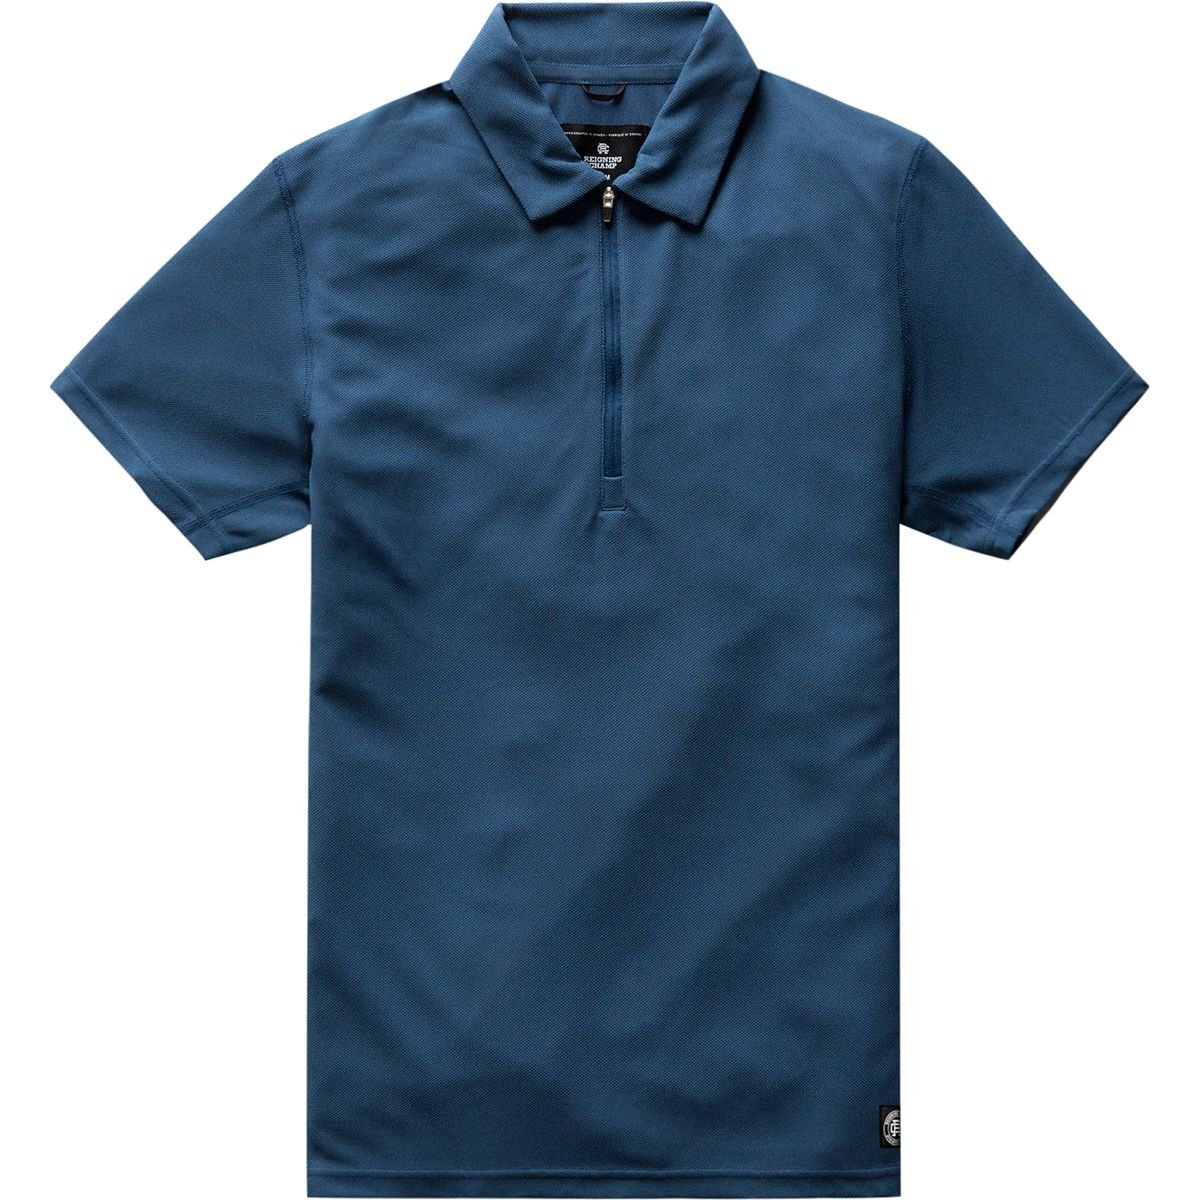 Reigning Champ Coolmax Pique Polo – Men 's B07B4GS2SC  ブルー(Pacific Blue) Large